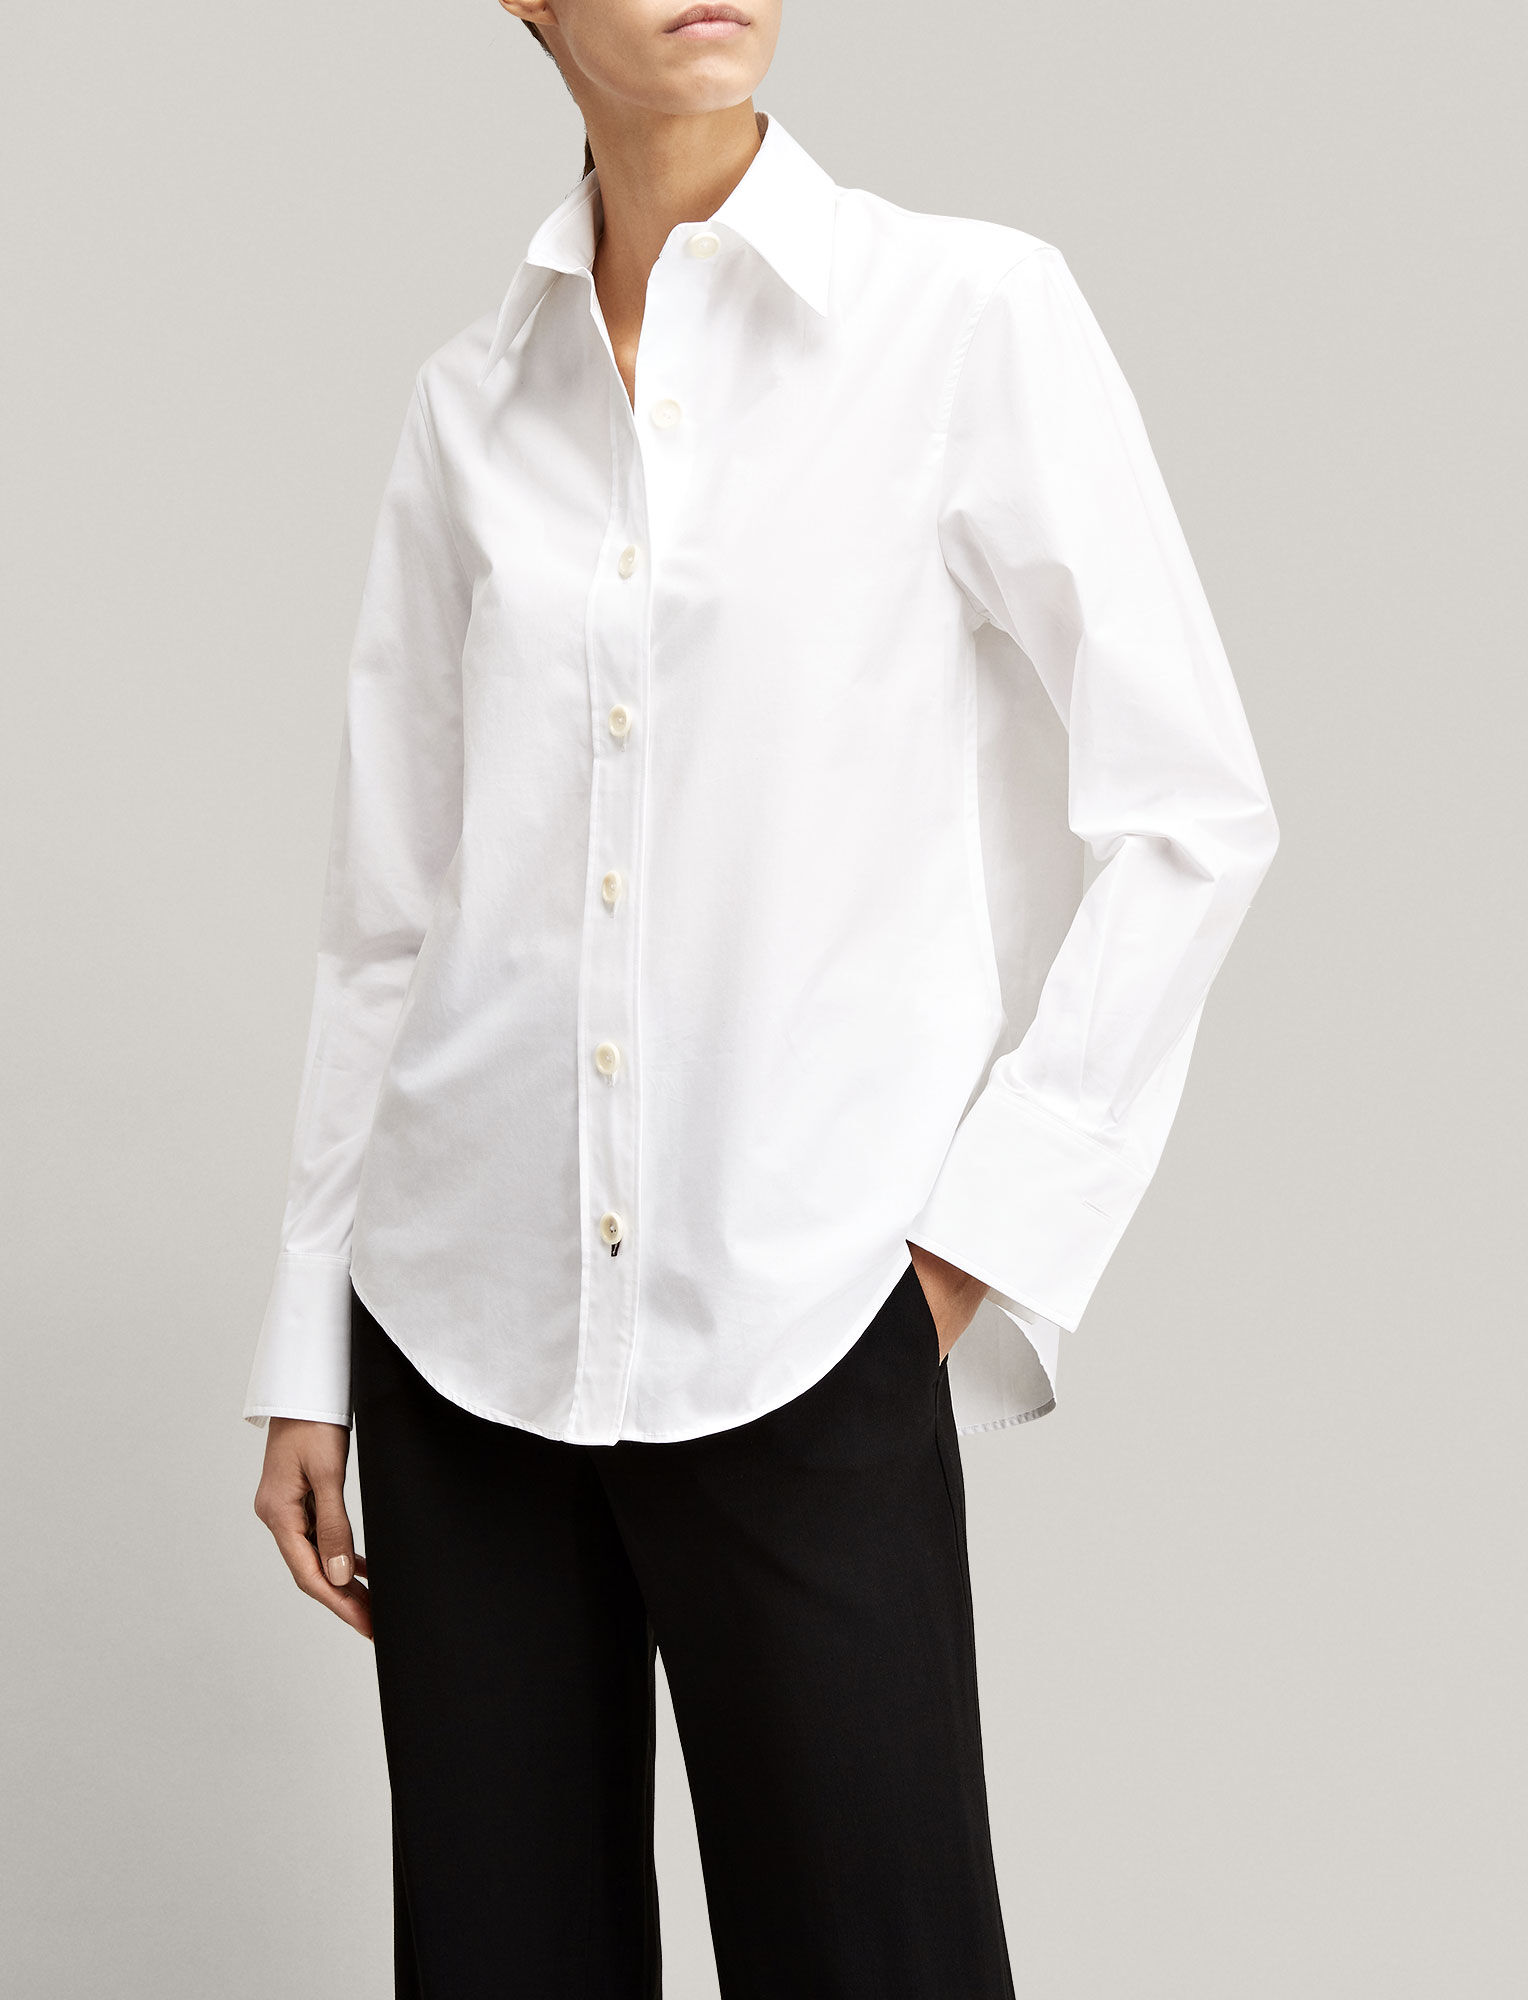 Joseph, Poplin New Garçon Blouse, in WHITE